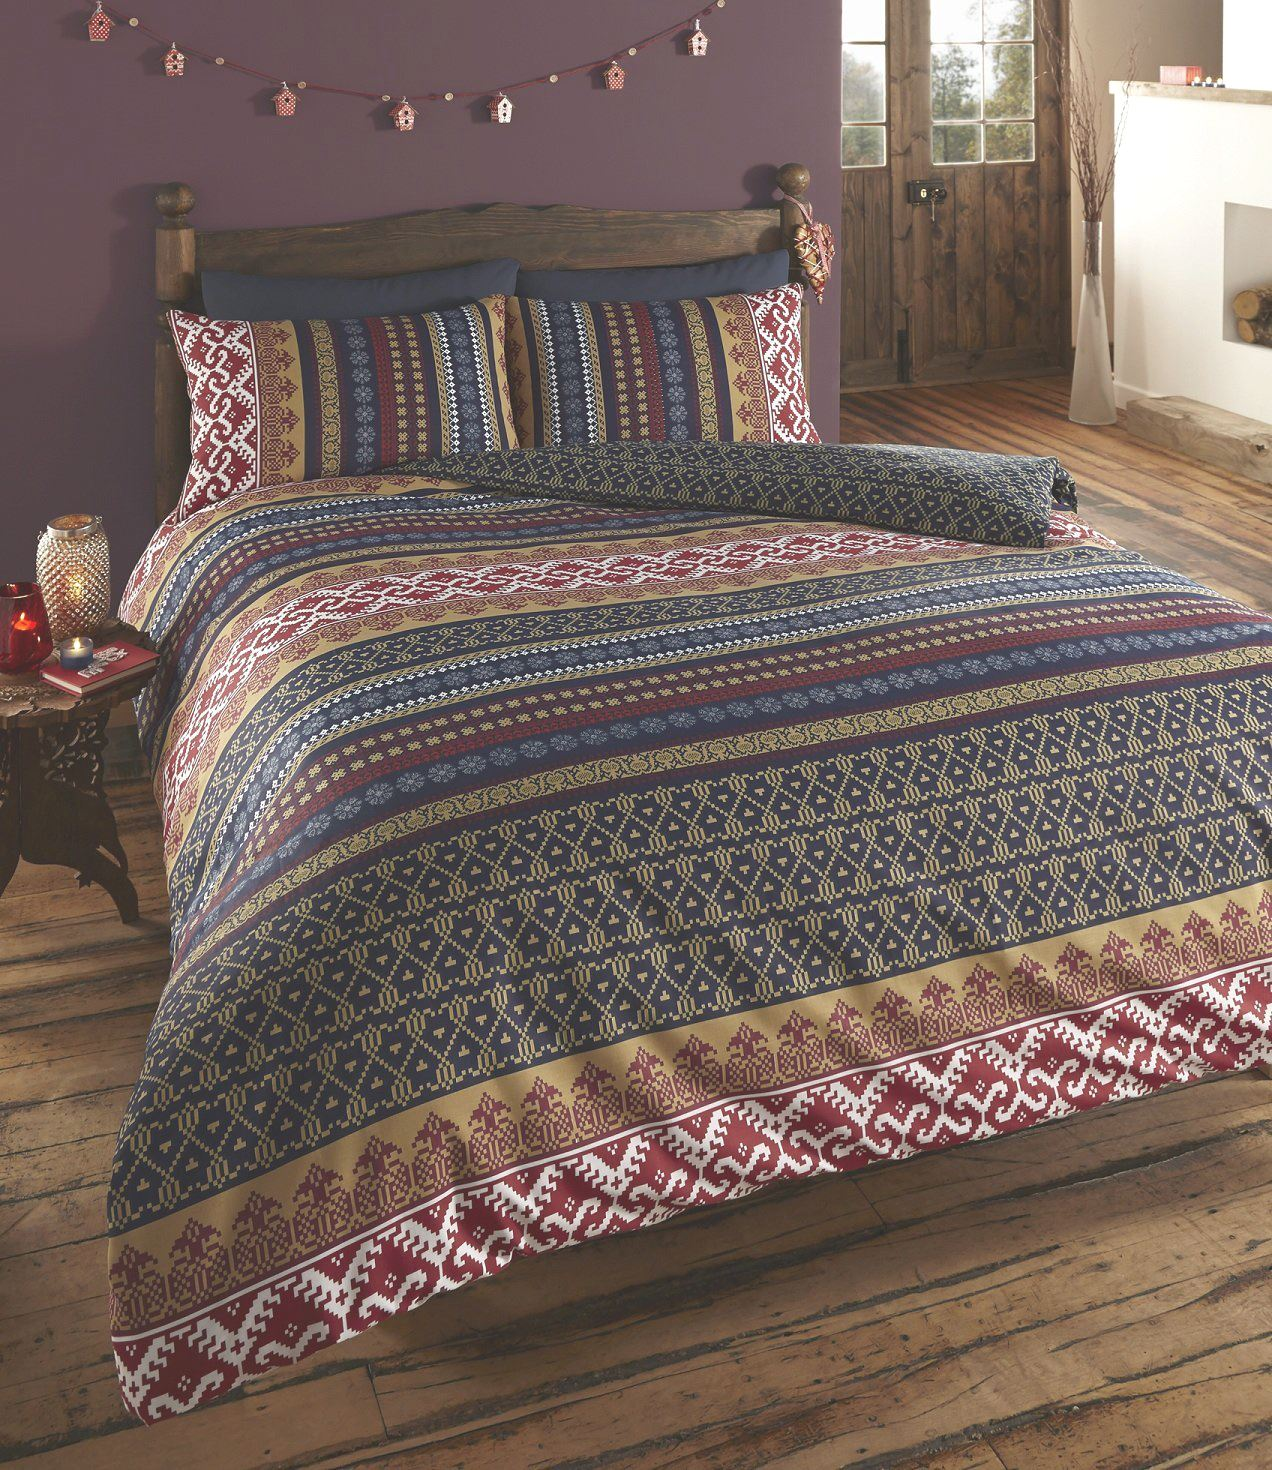 Bed cover in bedding ebay - Indian Style Elephant Quilt Duvet Cover Amp Pillowcase